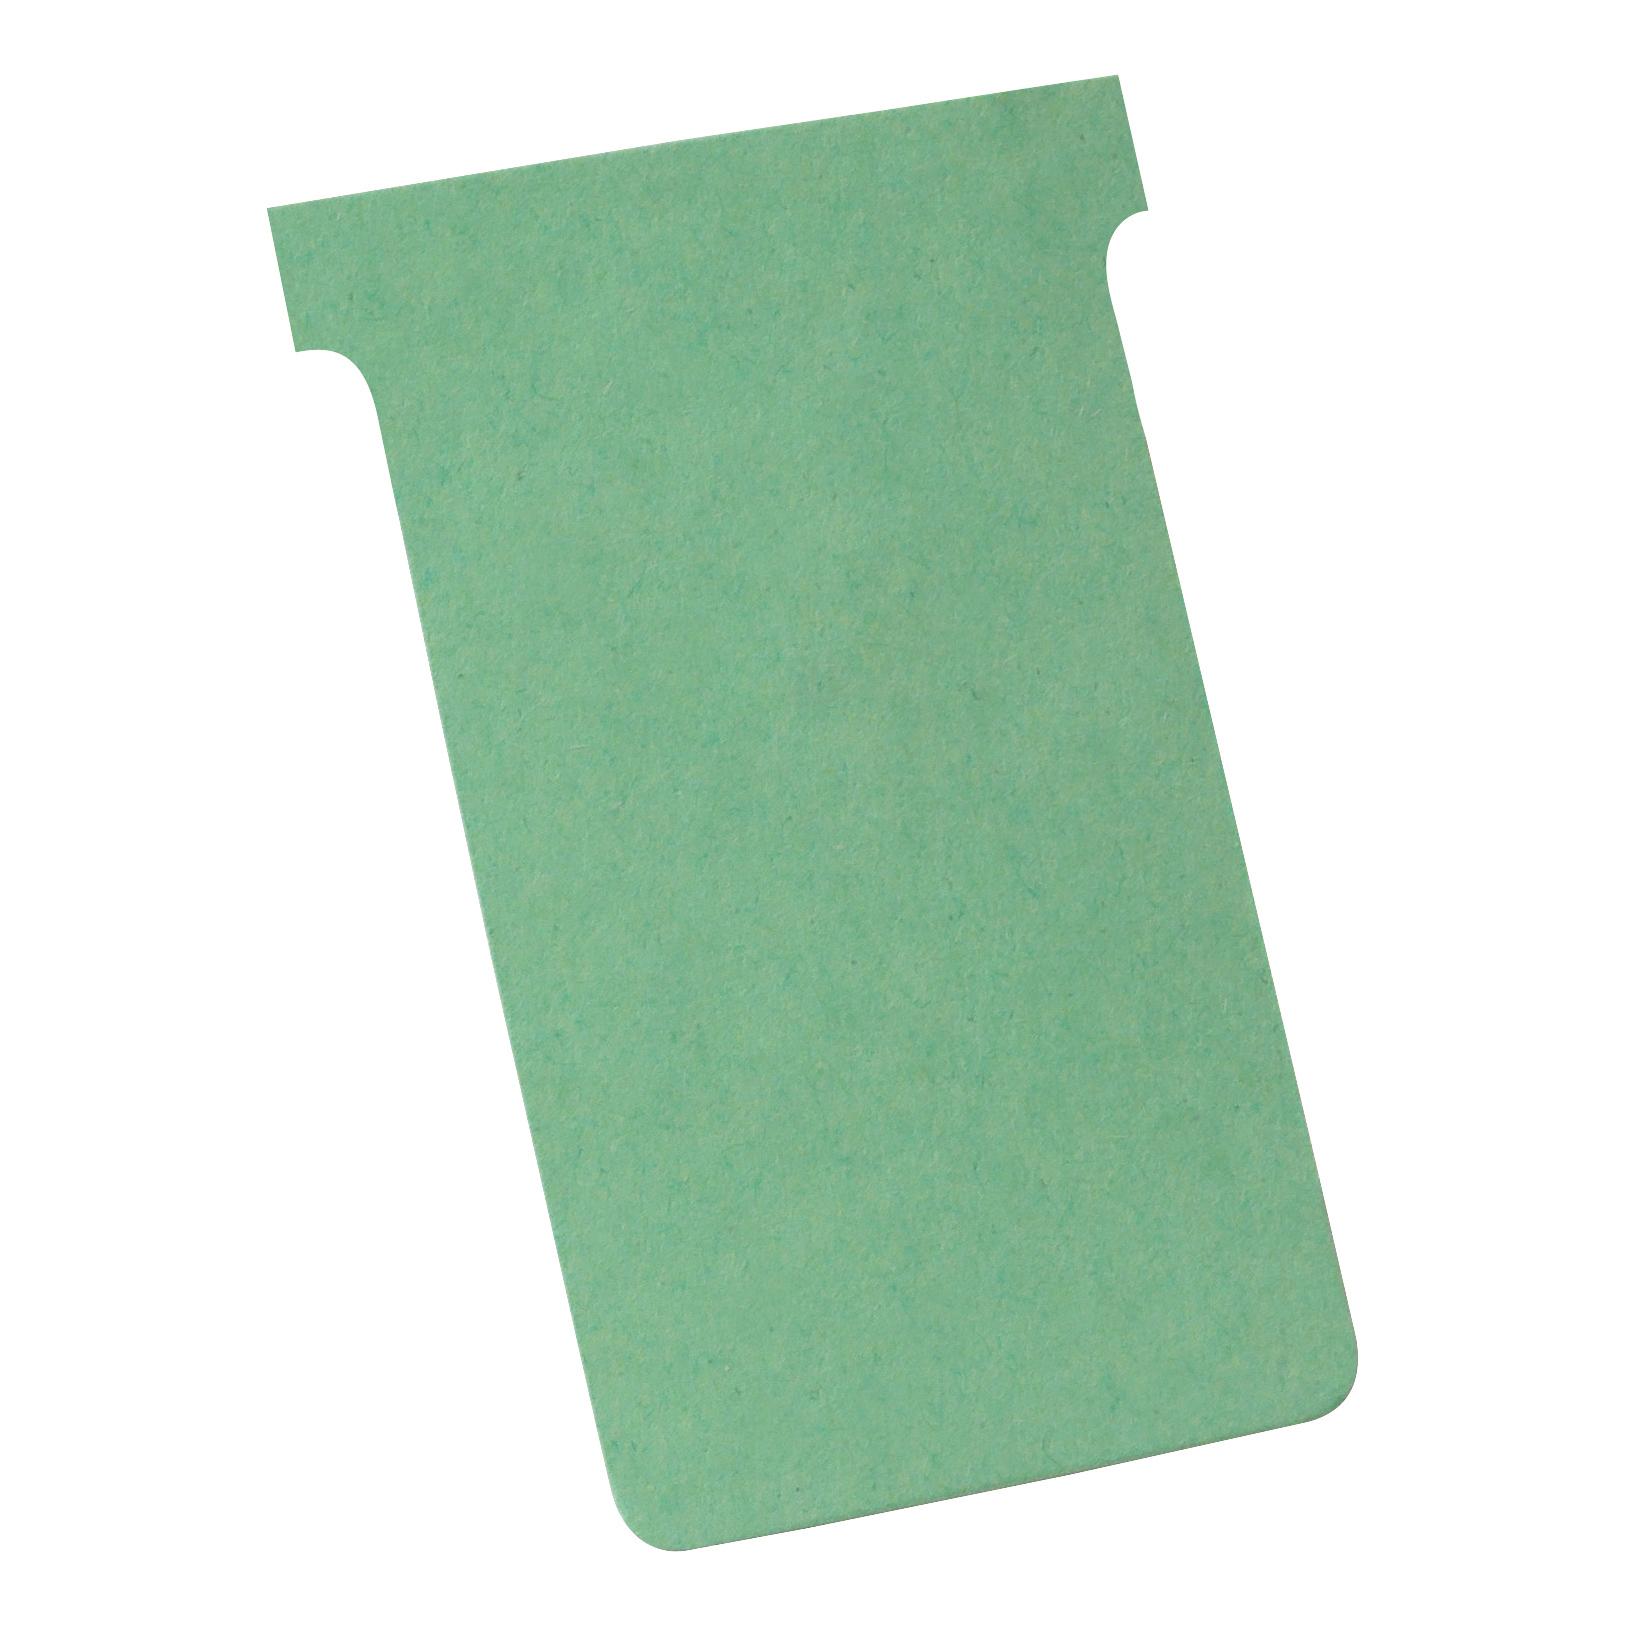 T Cards Nobo T-Cards 160gsm Tab Top 15mm W124x Bottom W112x Full H180mm Size 4 Green Ref 32938924 Pack 100